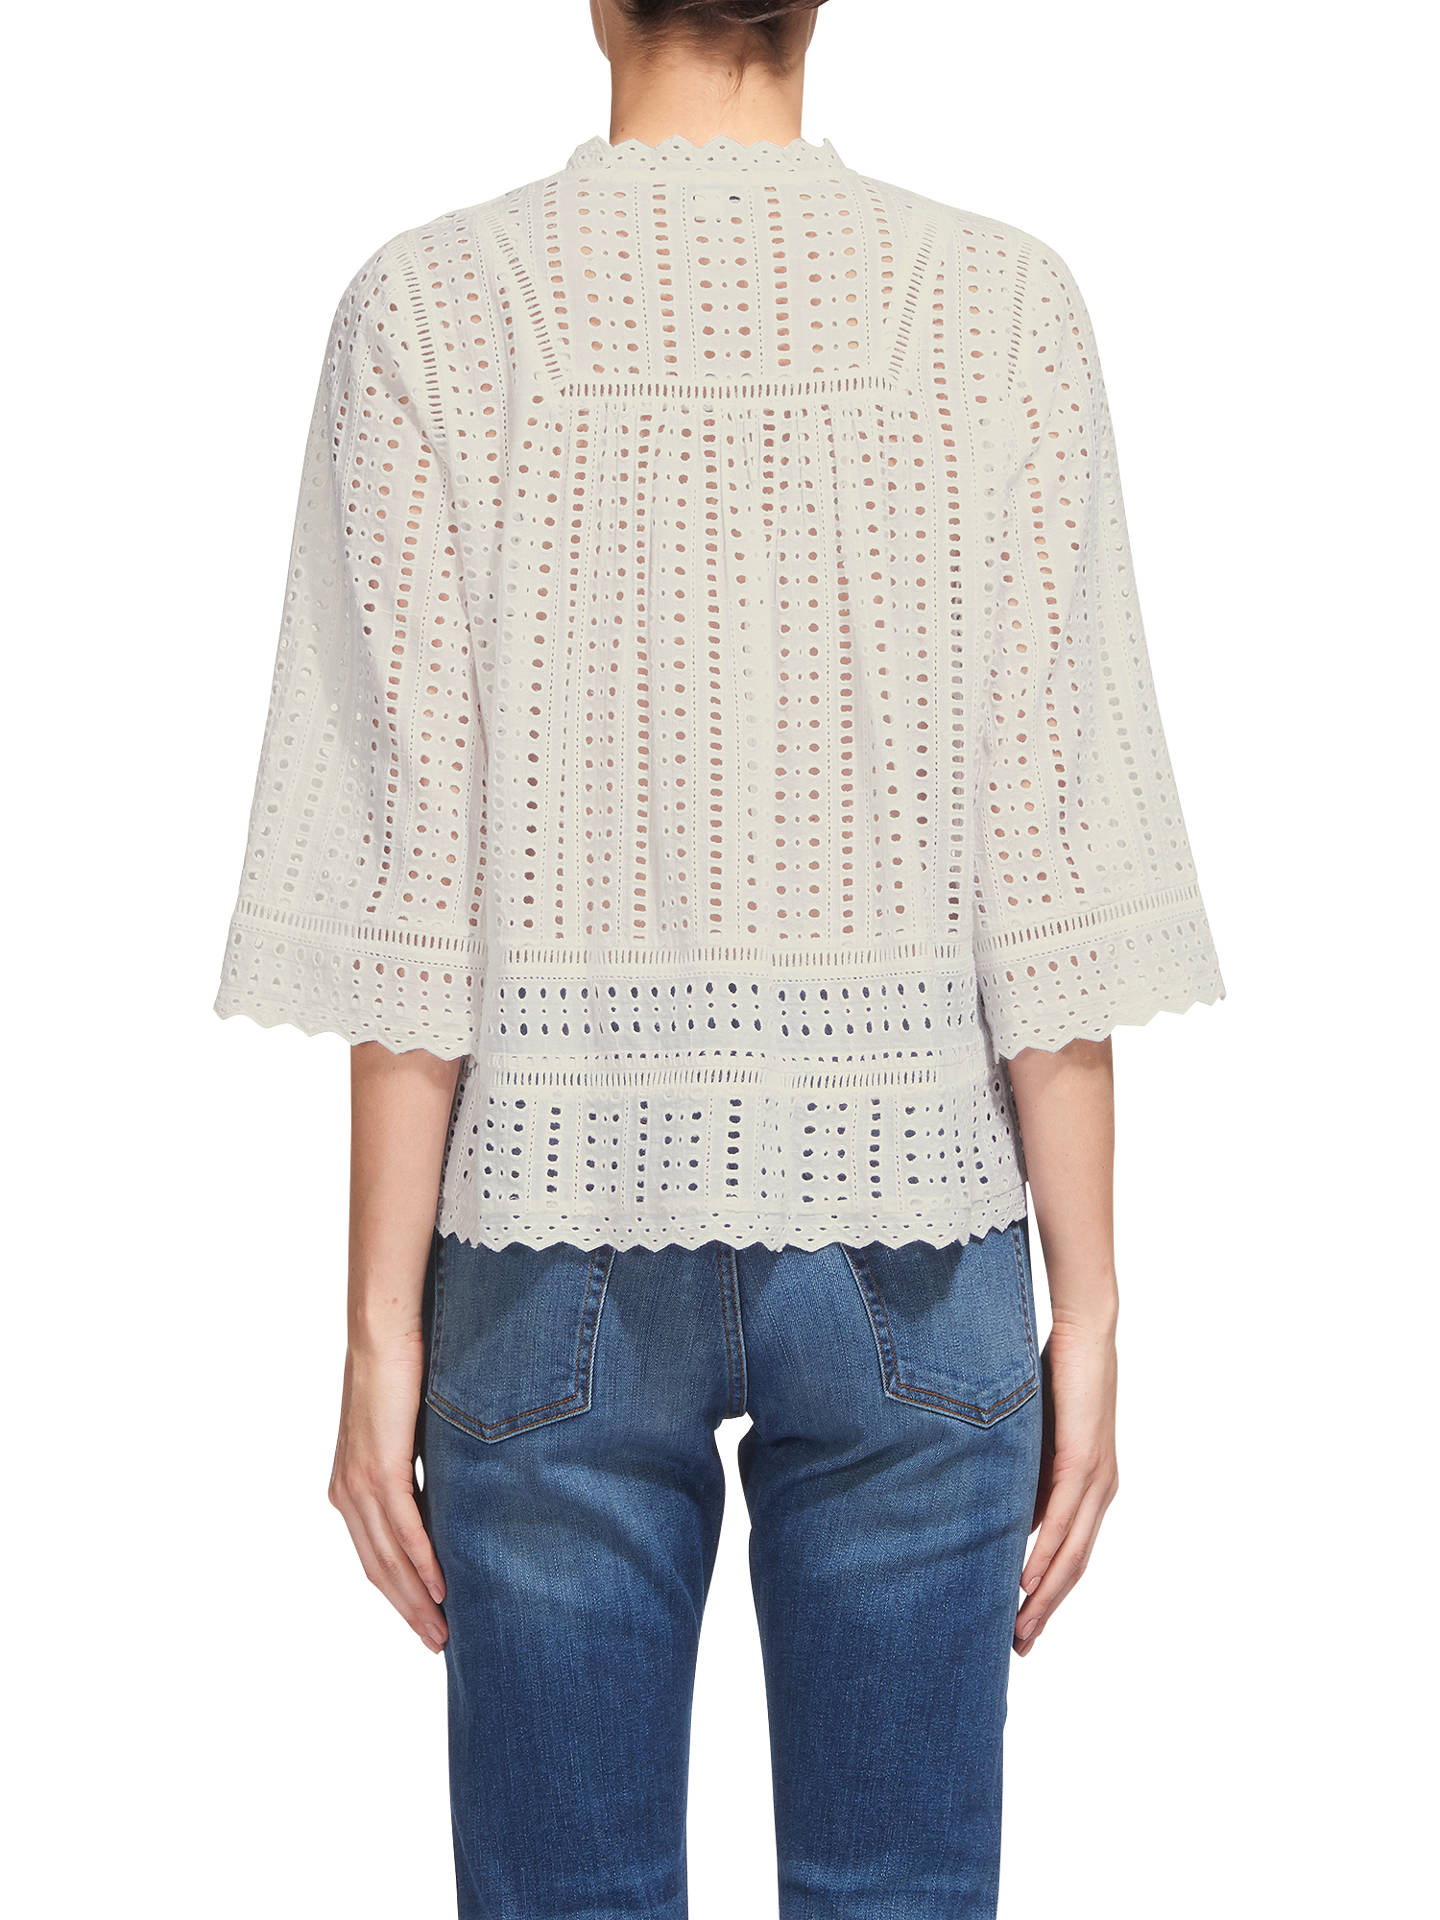 BuyWhistles Margo Broderie Tassle Blouse, White, 6 Online at johnlewis.com